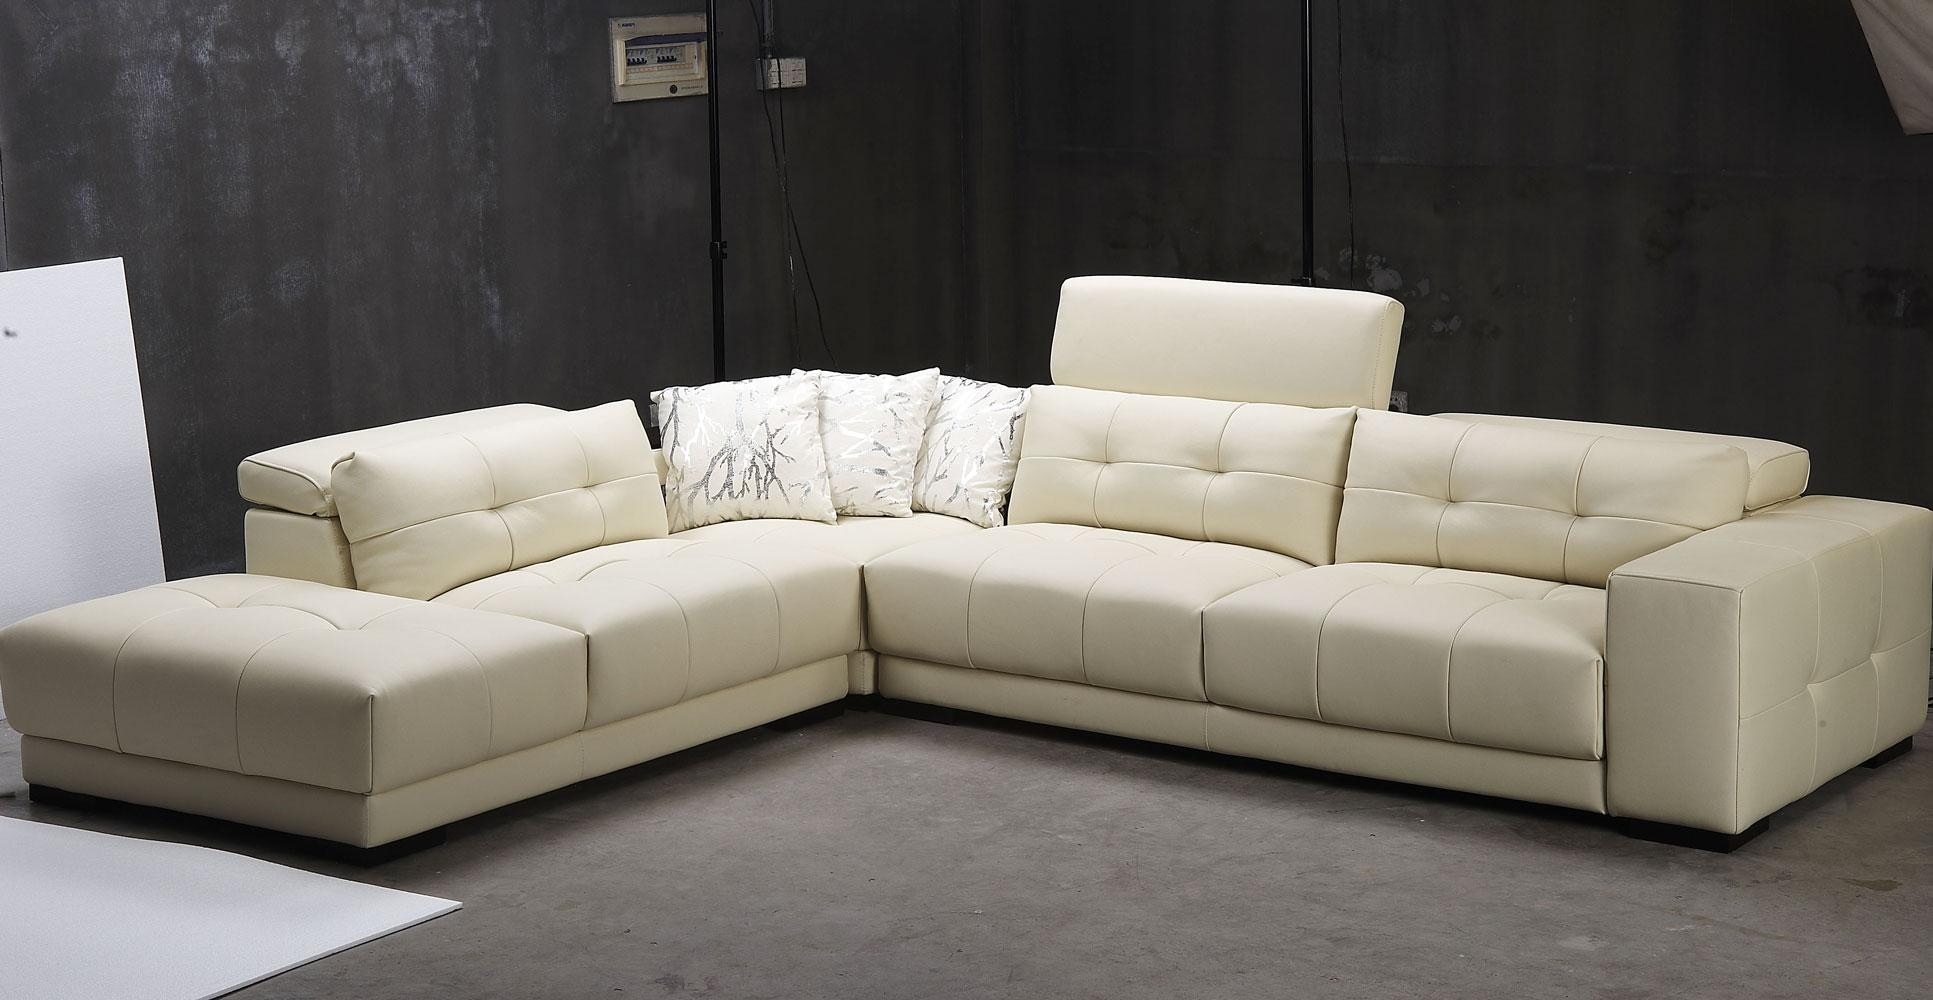 3 Piece Sectional Sleeper Sofa Sofa Ideas